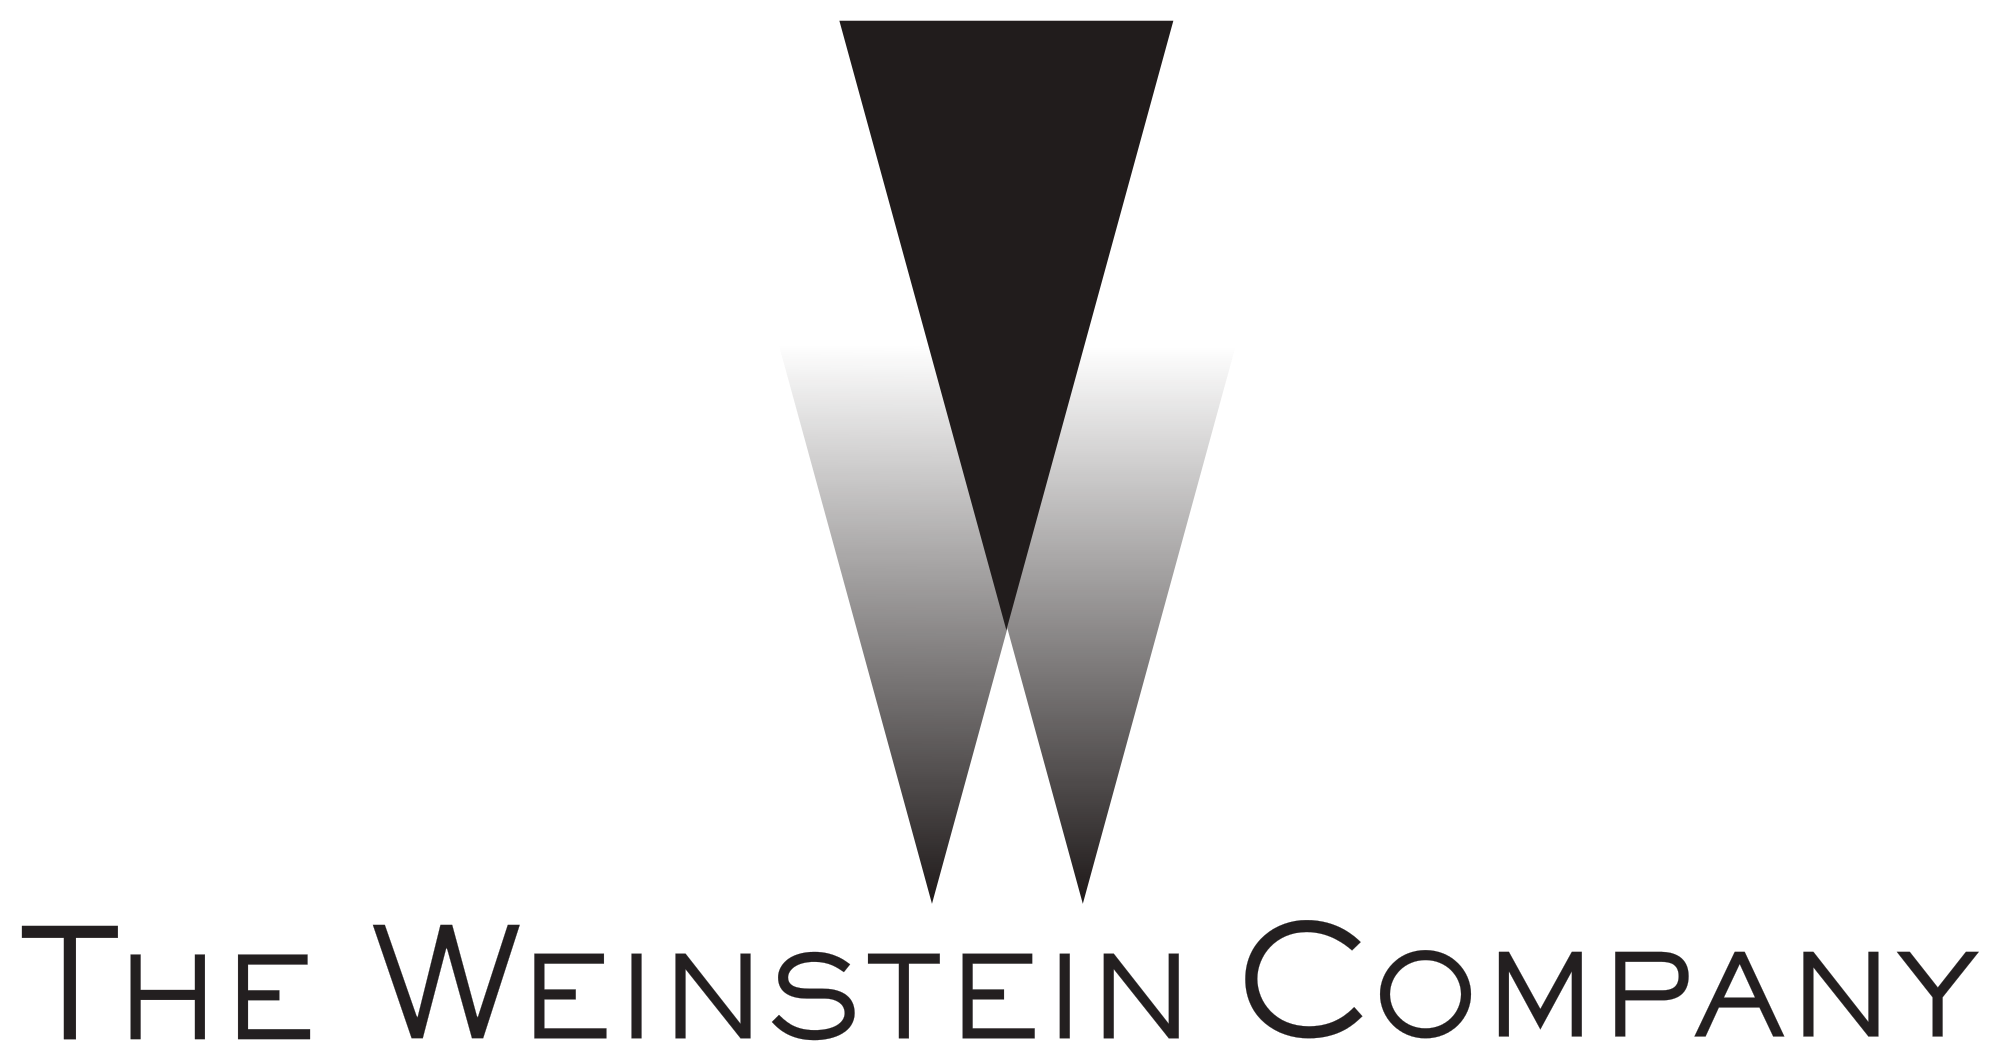 the weinstein company logo png